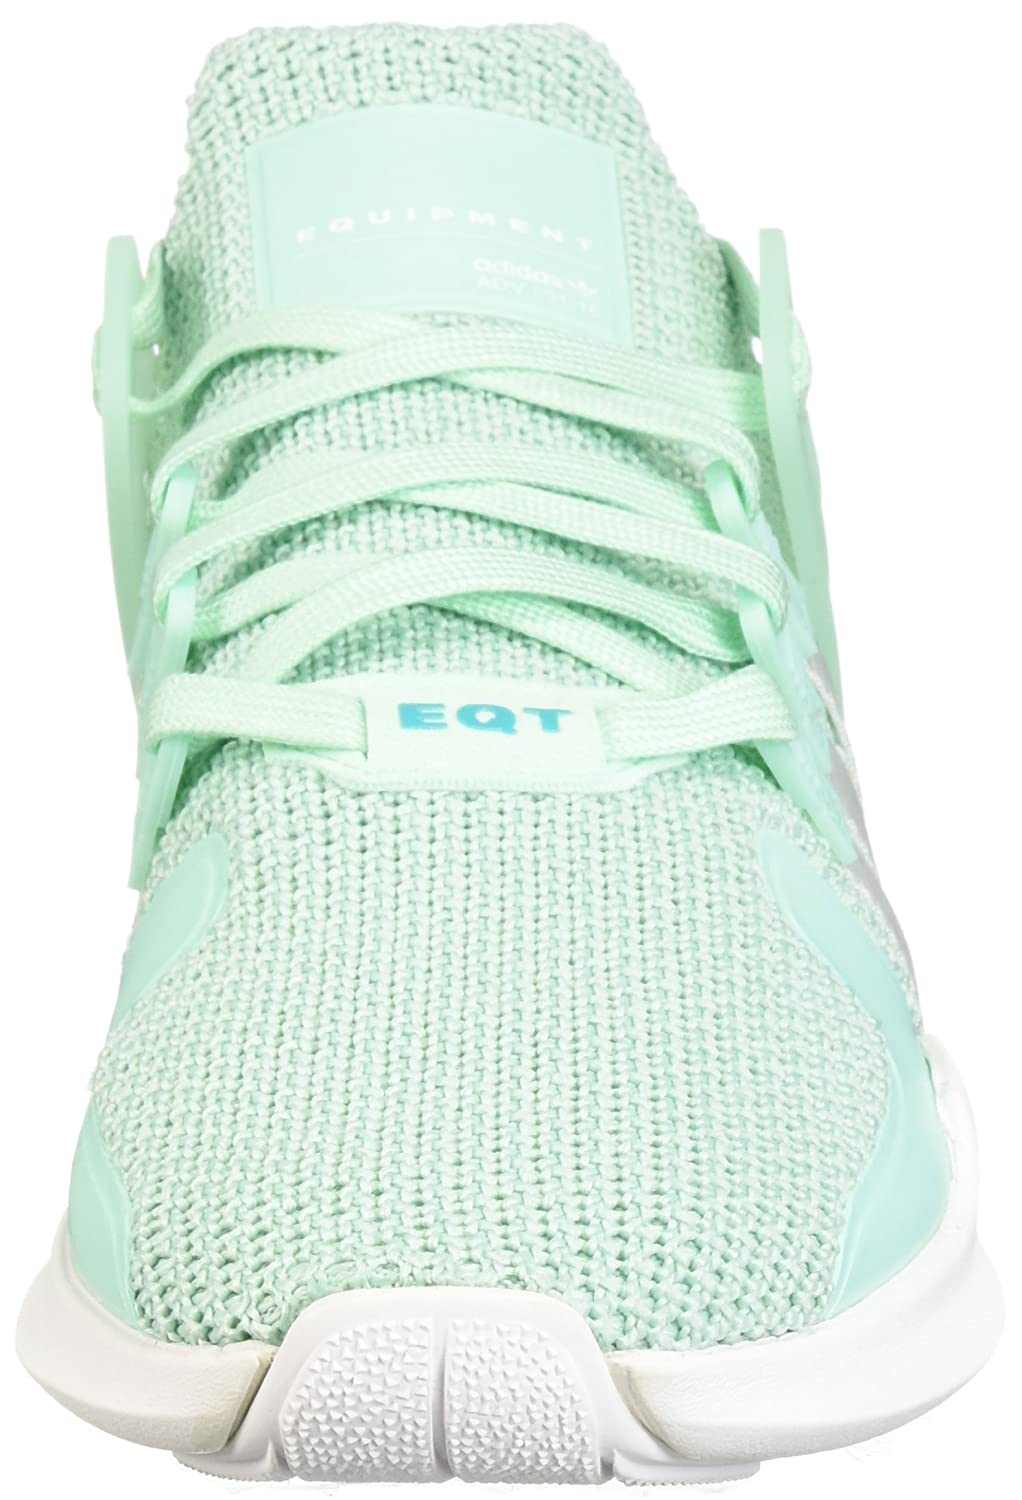 sports shoes eed78 5af9c adidas Originals Womens EQT Support ADV Running Shoe, Clear MintWhitehi-res  Aqua, 8 M US Amazon.co.uk Shoes  Bags